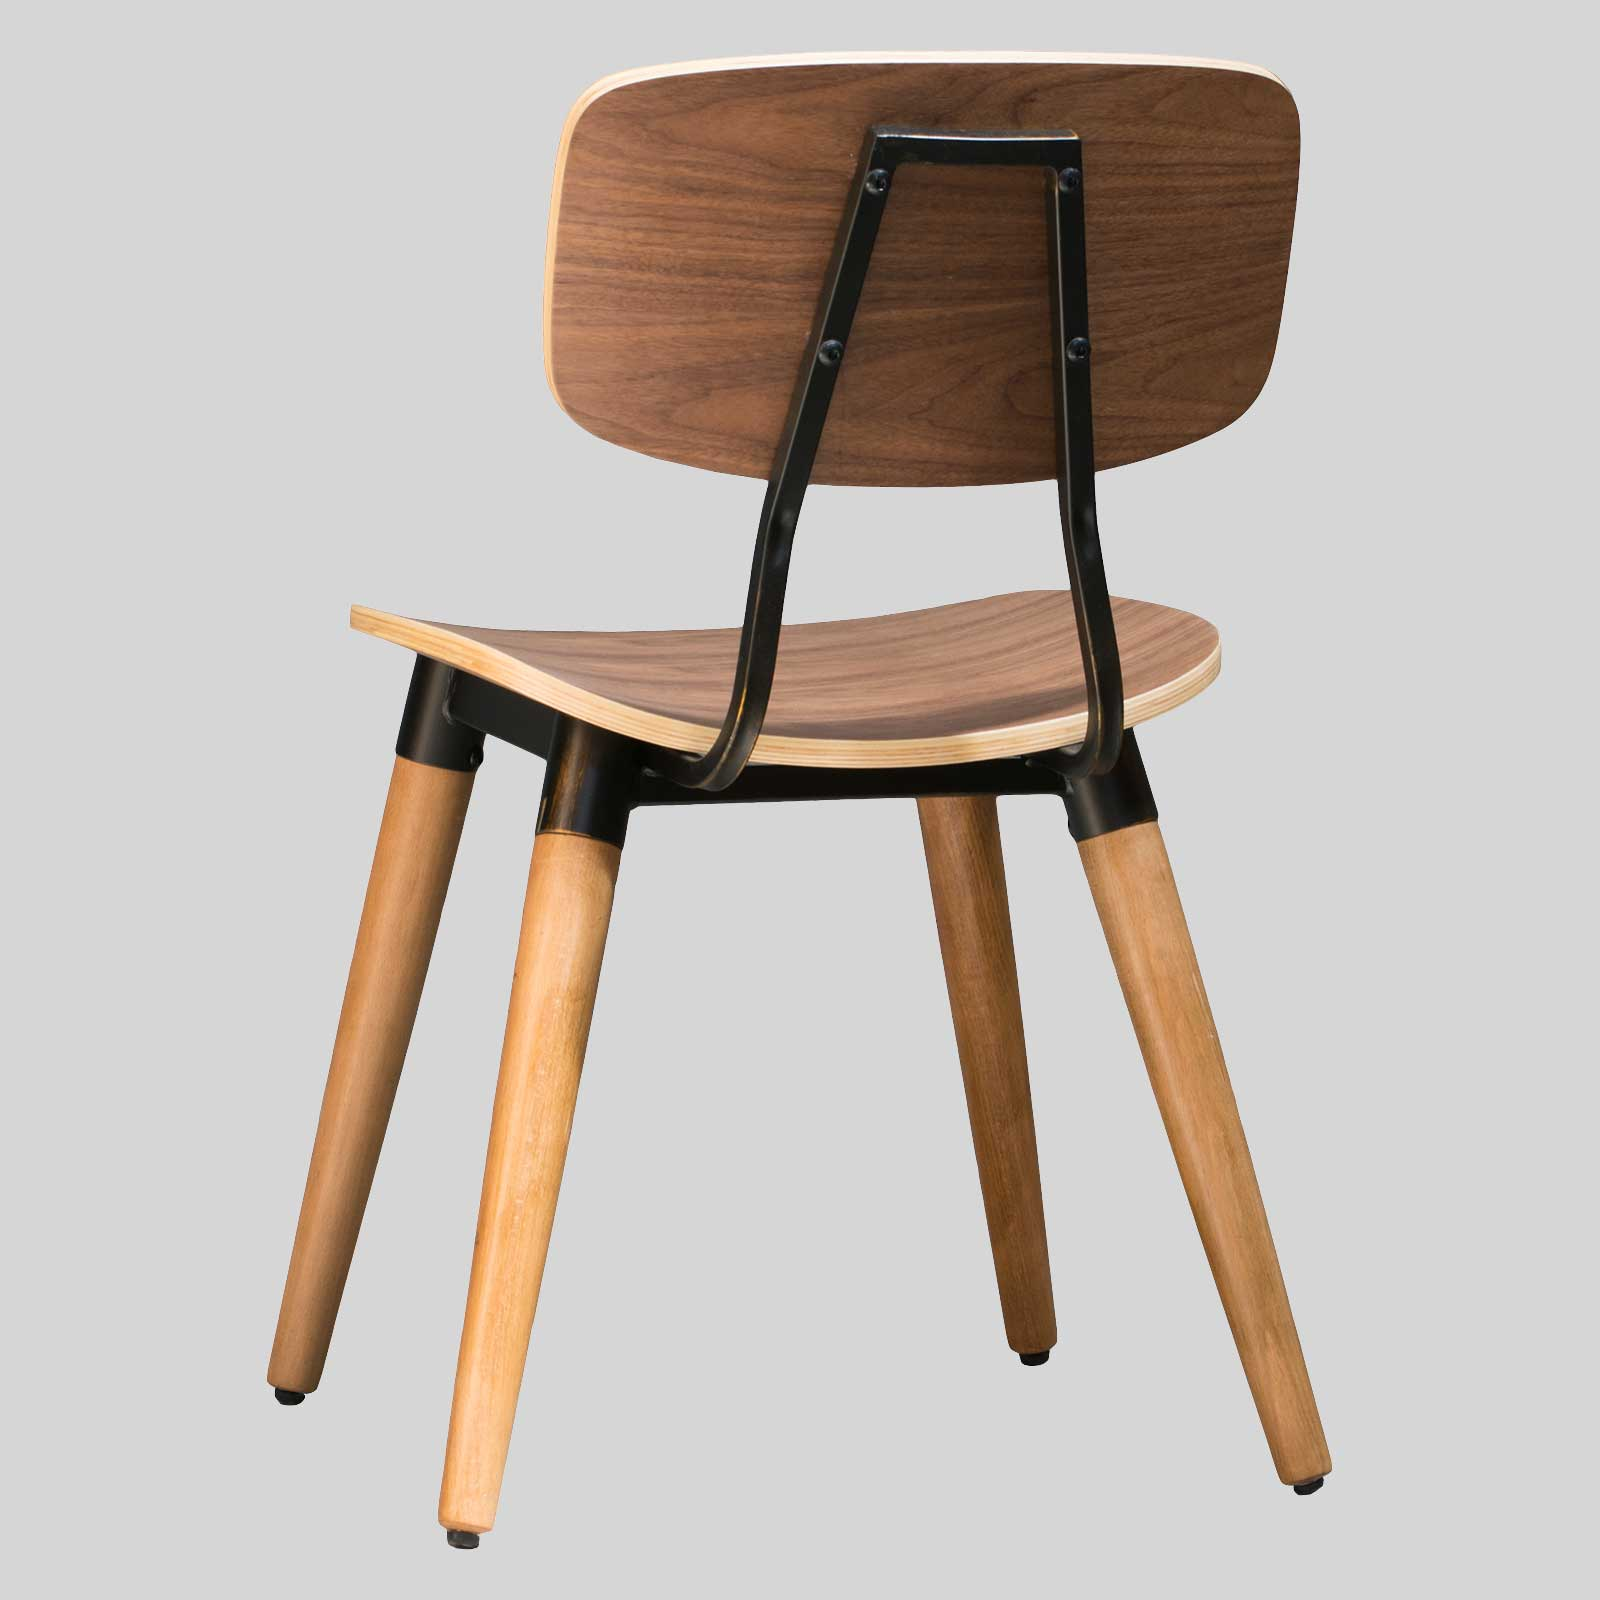 Retro Dining Chairs for cafes